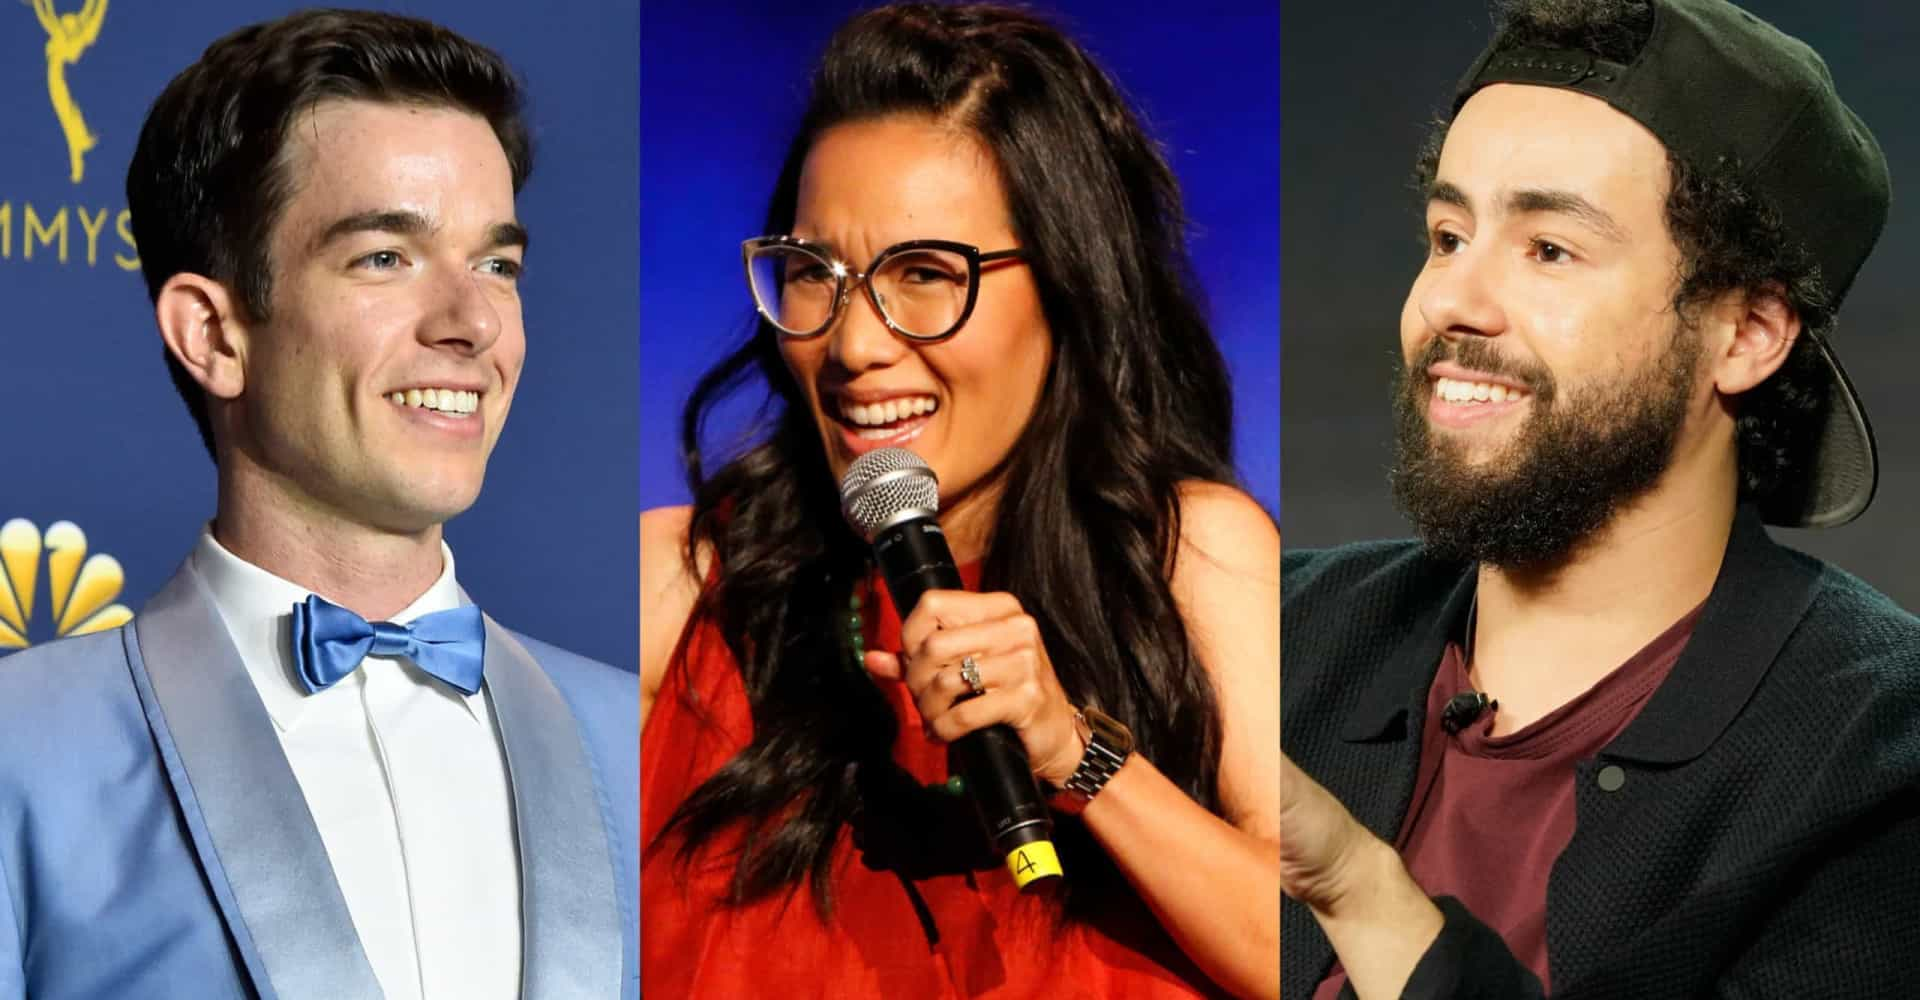 What to watch: The best stand-up comedians right now